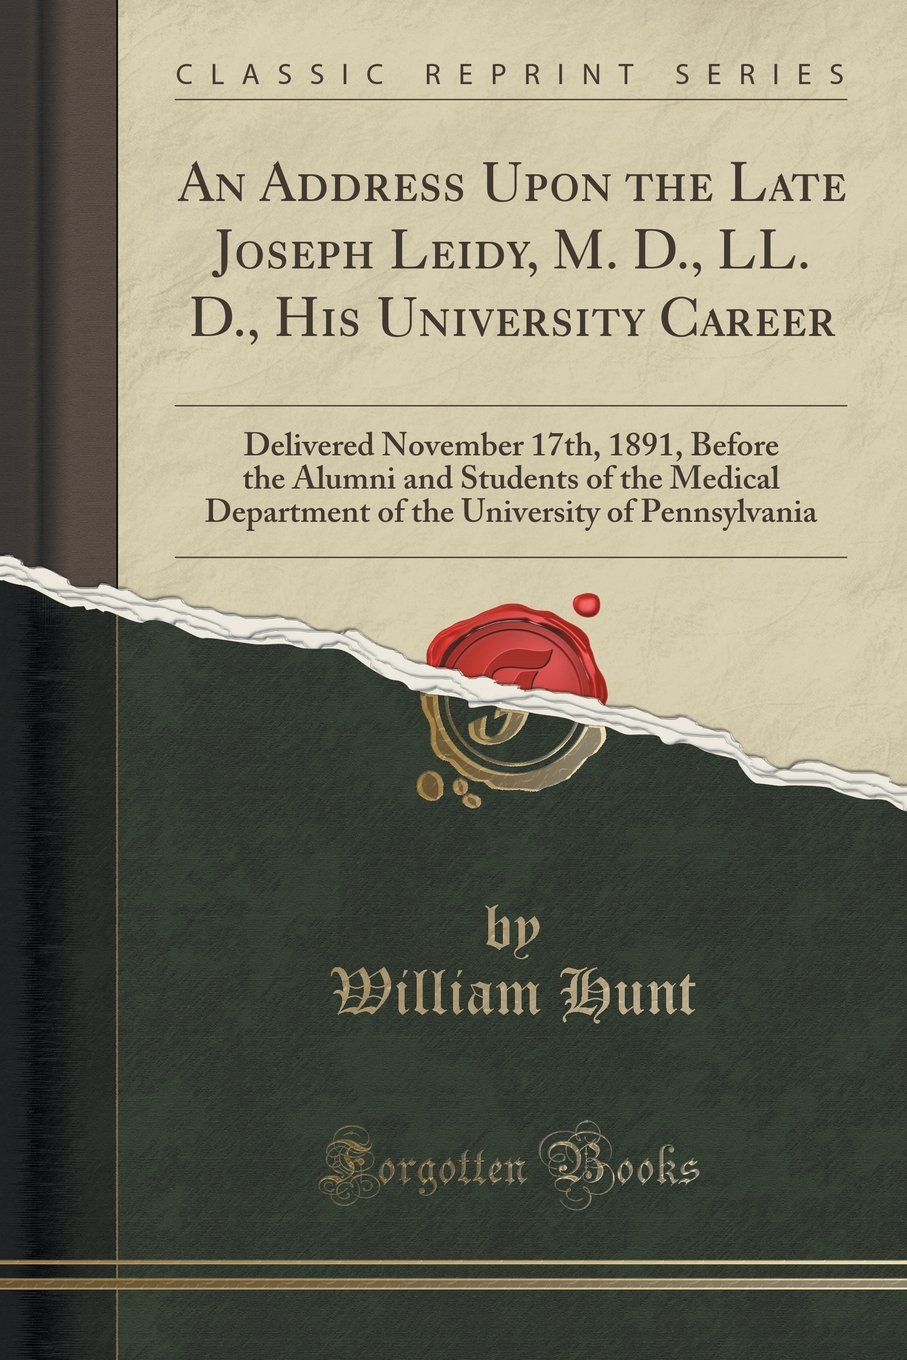 An Address Upon the Late Joseph Leidy, M. D., LL. D., His University Career: Delivered November 17th, 1891, Before the Alumni and Students of the ... University of Pennsylvania (Classic Reprint)